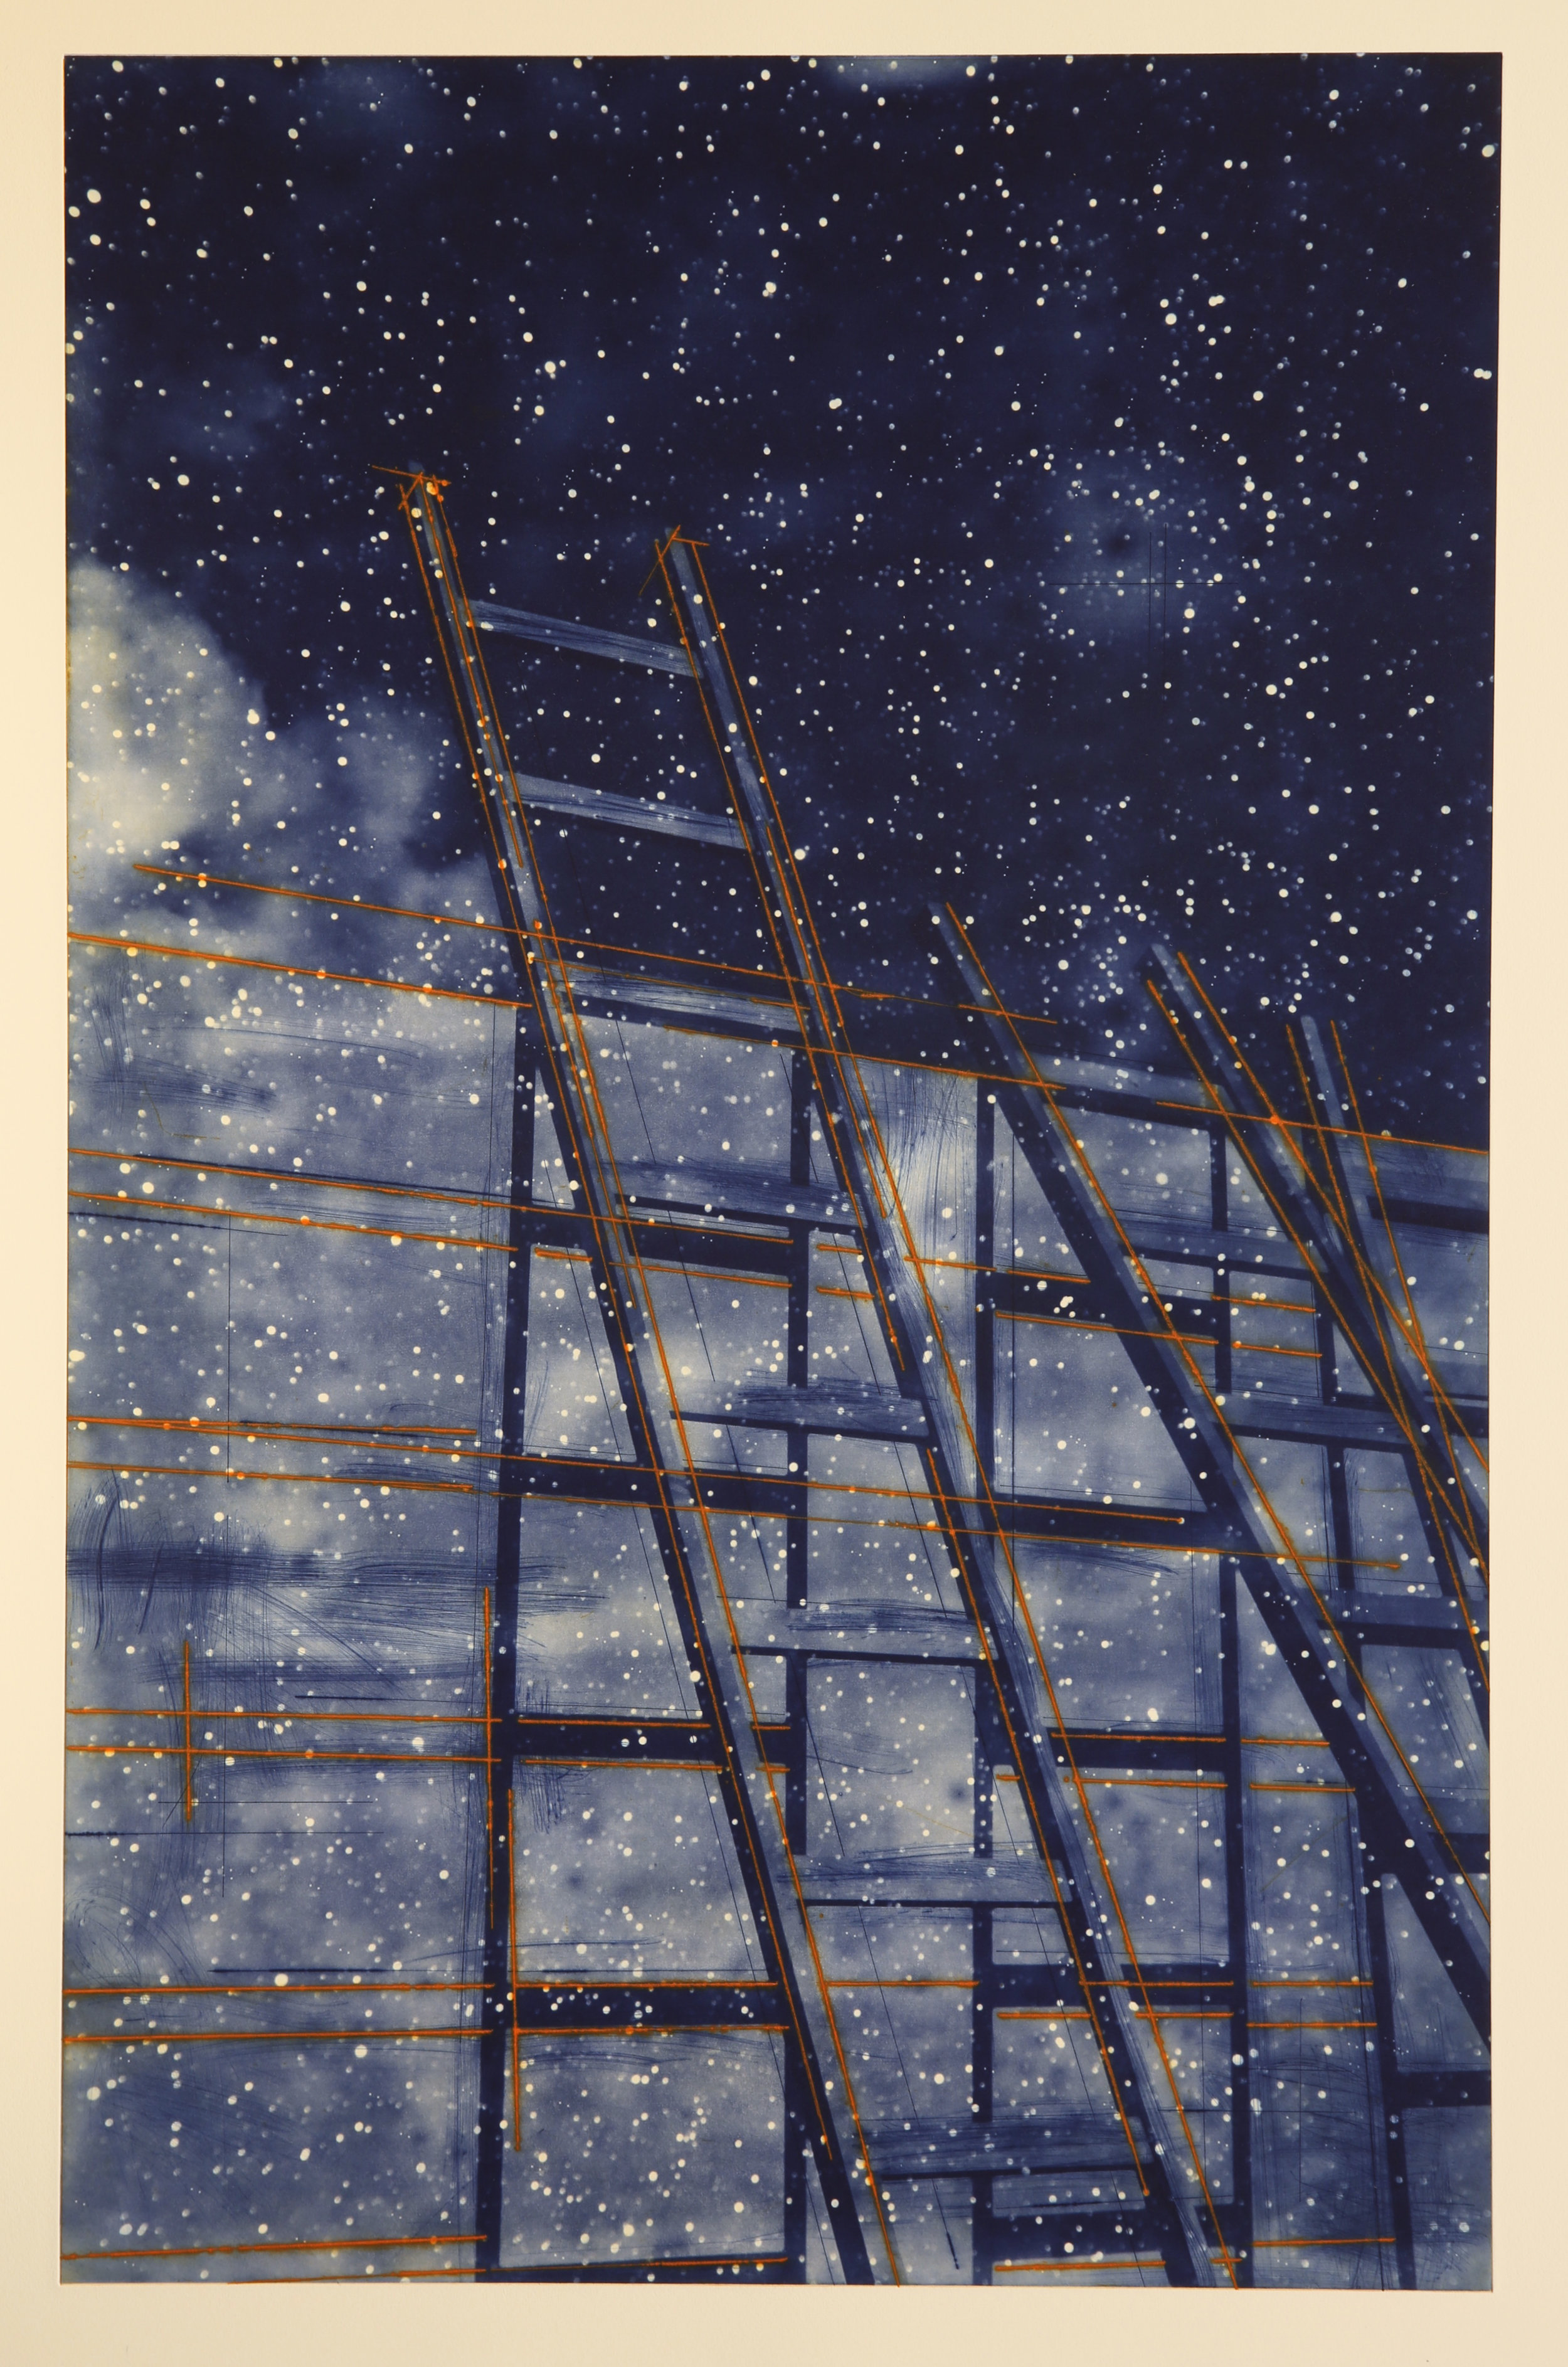 Venia / Estrella / Intermezzo / Opportunity ( The Wall)  Image size: 57 x 89 cm /Paper Size: 77 x 109 cm Drypoint / Photopolymer / Etching Edition of 40